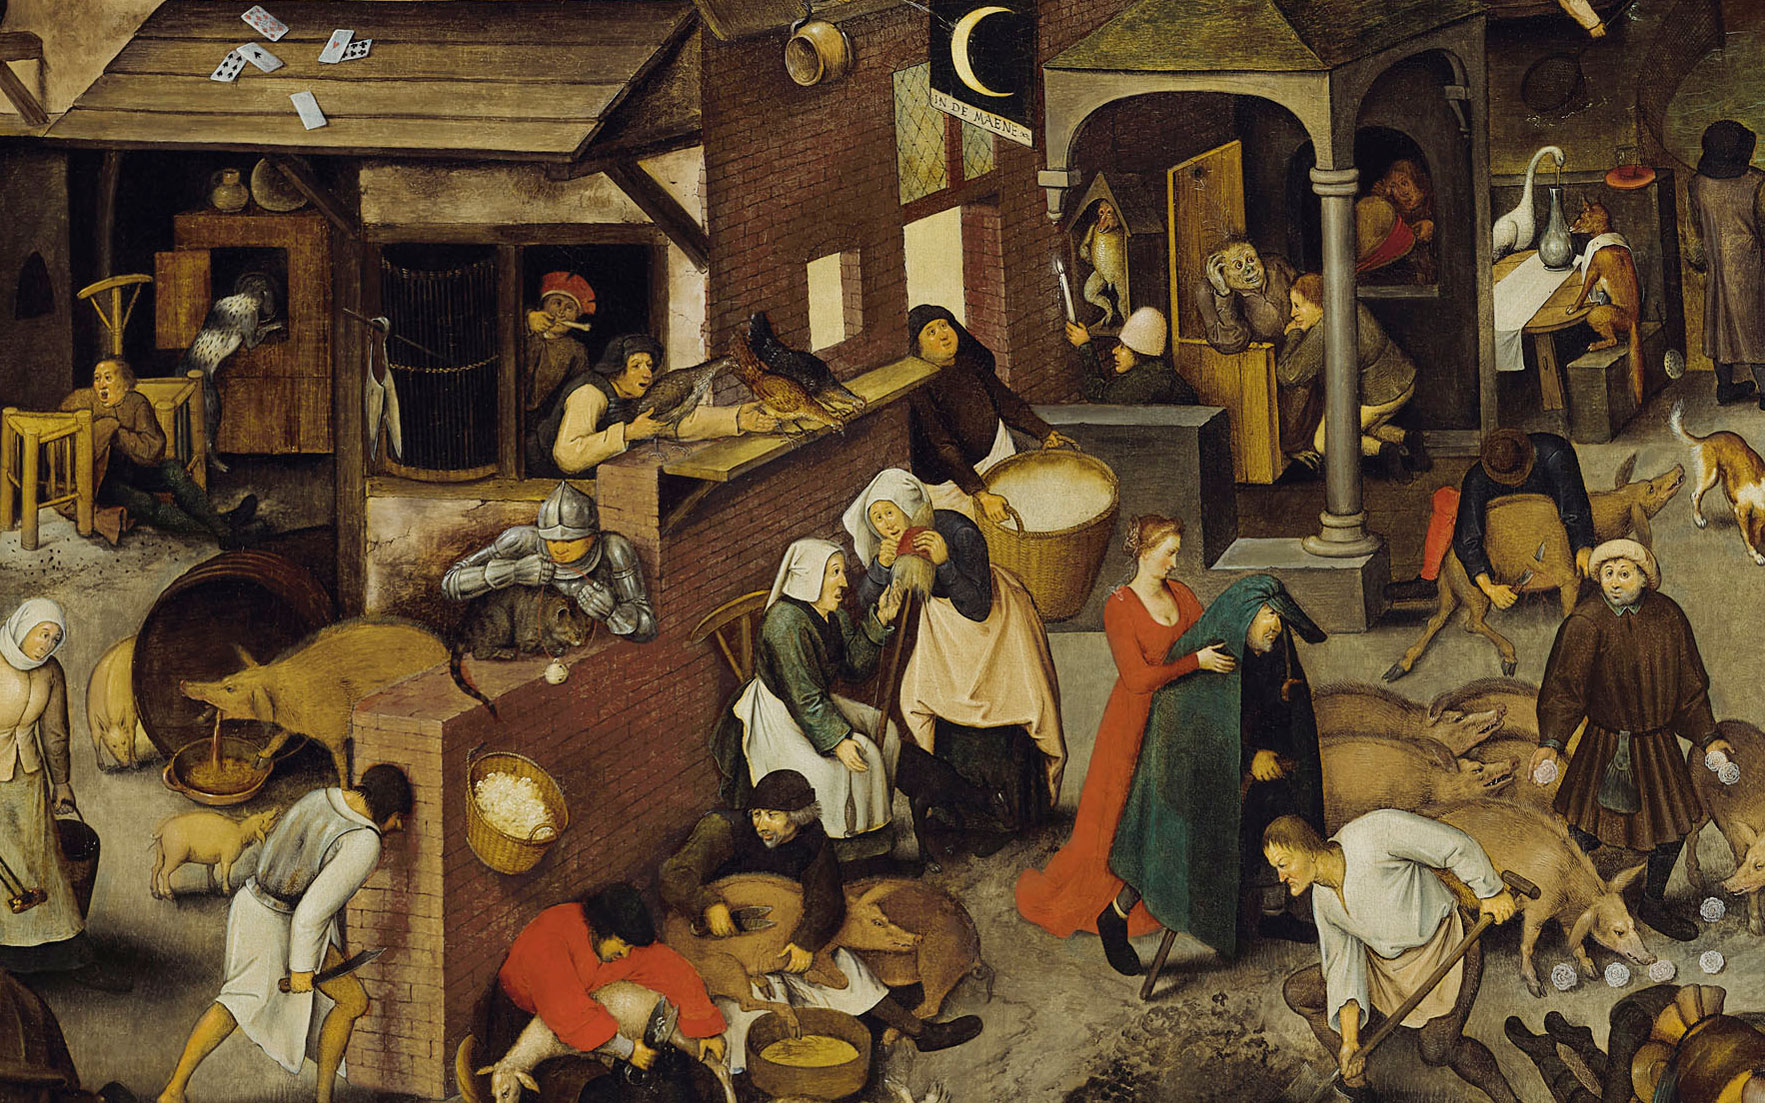 (Detail of) Pieter Brueghel, the Younger (15645-16378), The Netherlandish Proverbs. 47¾ x 65⅝  in (121.3 x 166.7  cm). Estimate £3,500,000-5,500,000. Offered in Old Masters Evening